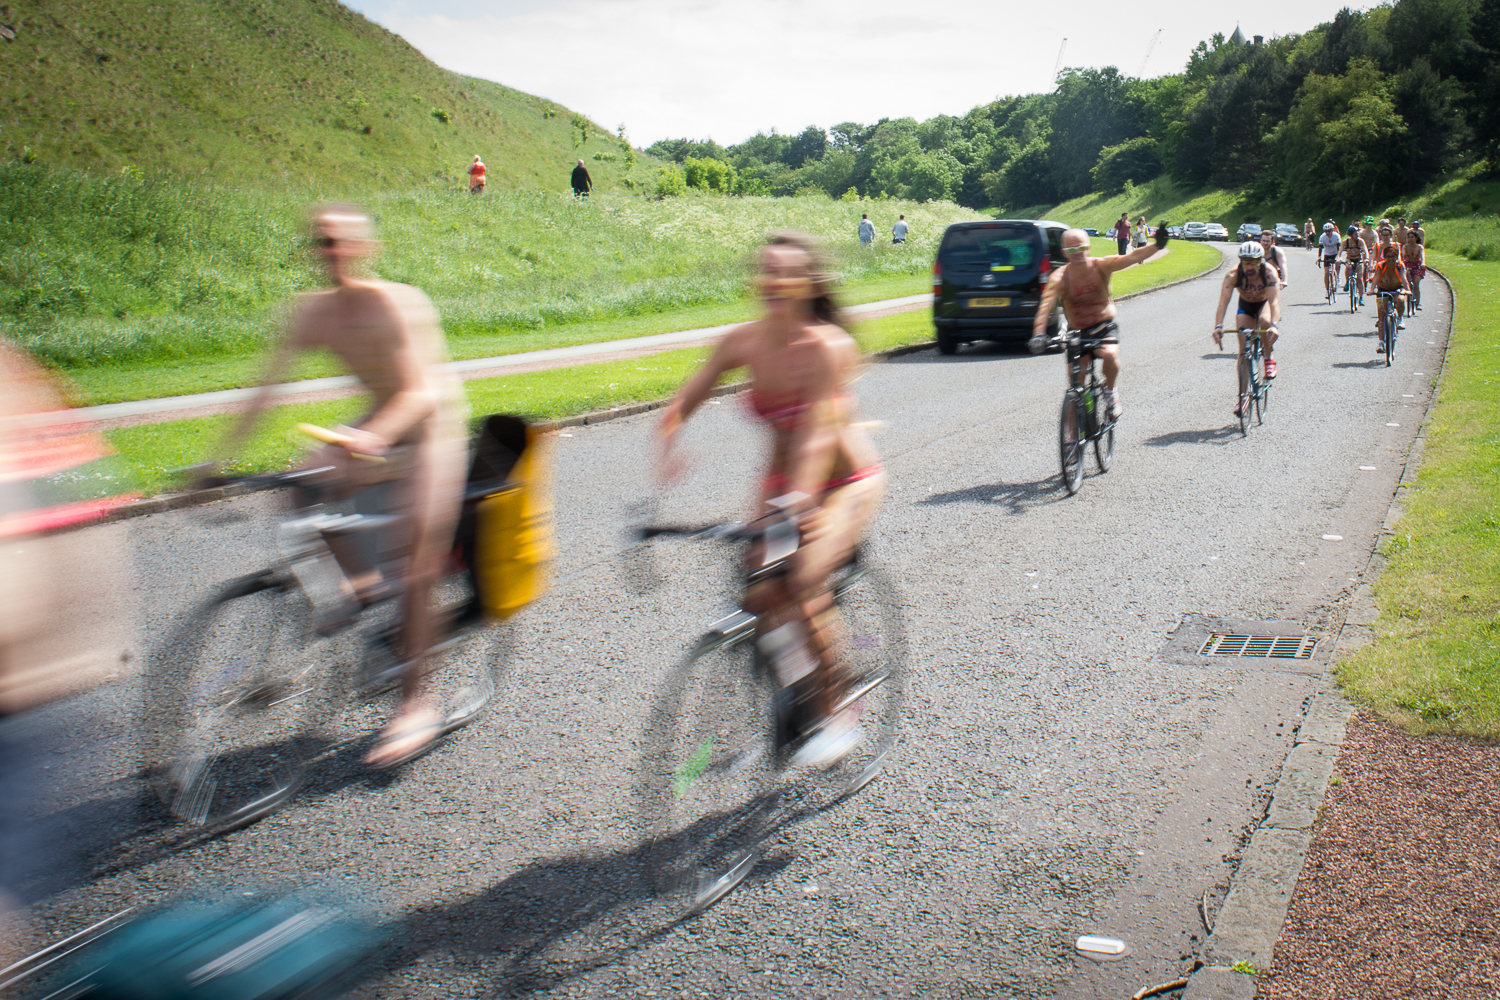 World Naked Bike Ride, Edinburgh 2019